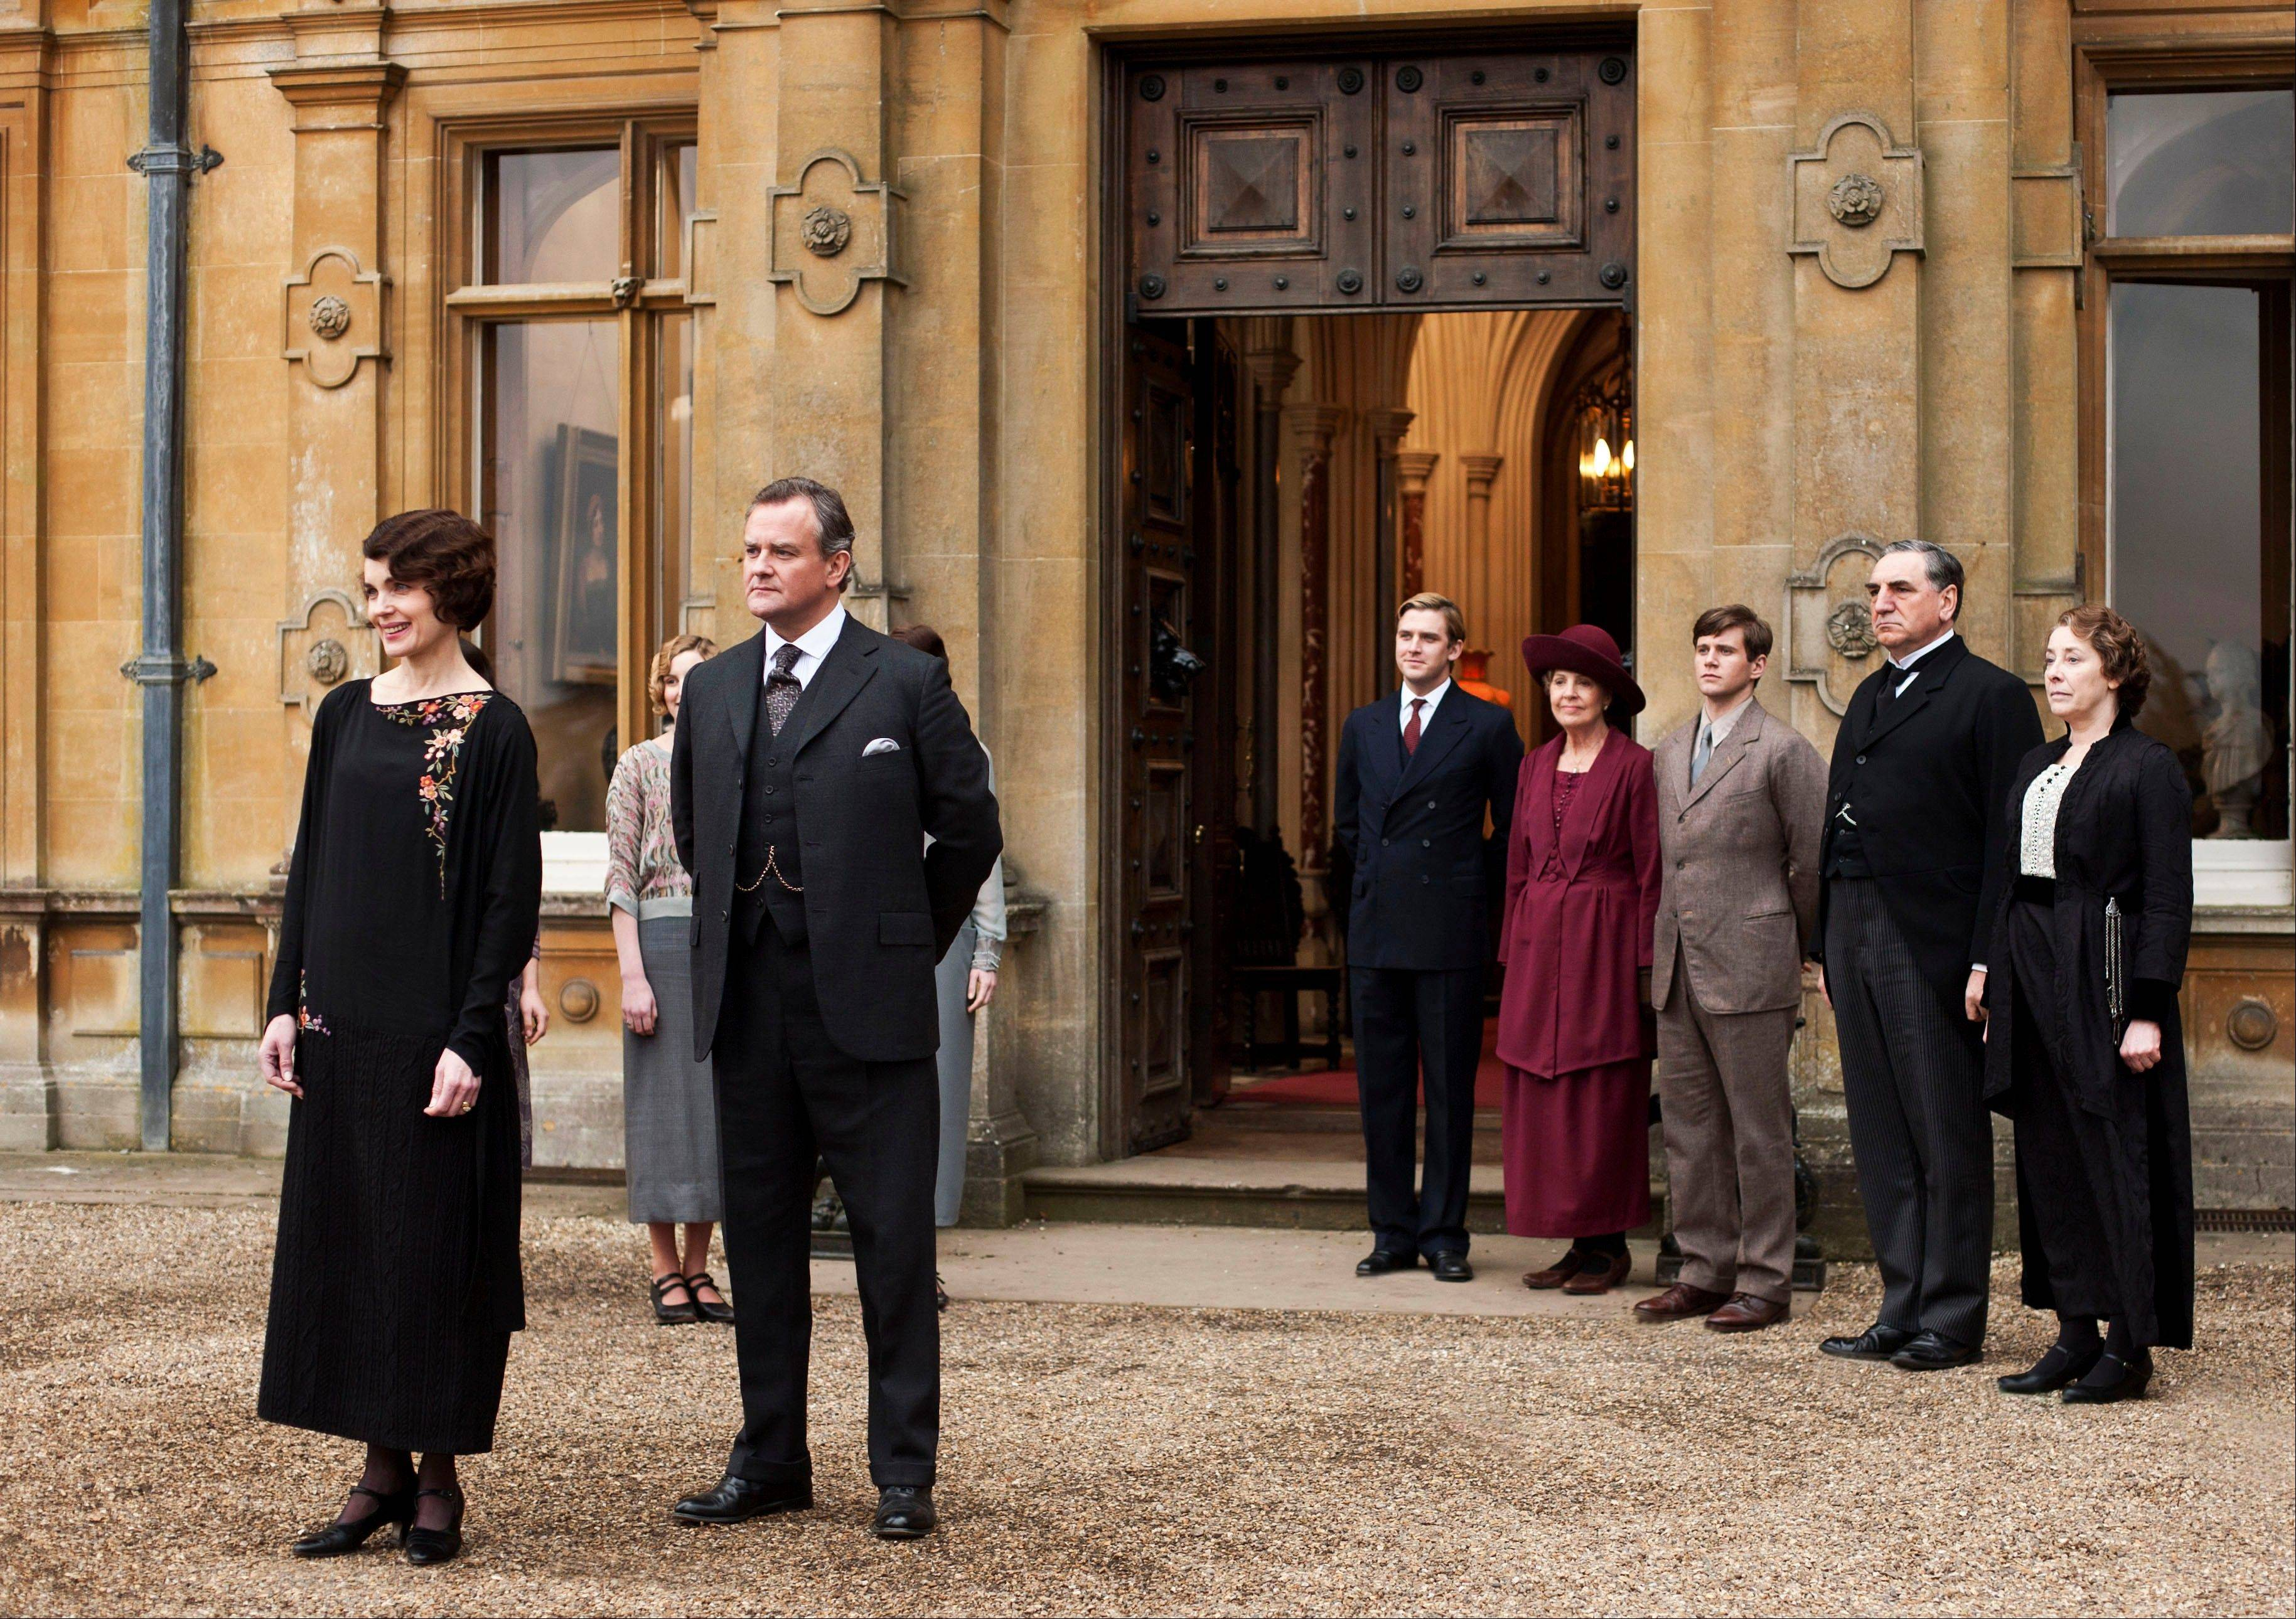 "Courtesy of PBSElizabeth McGovern as Lady Grantham, left, Hugh Bonneville as Lord Grantham, Dan Stevens as Matthew Crawley, Penelope Wilton as Isobel Crawley, Allen Leech as Tom Branson, Jim Carter as Mr. Carson, and Phyllis Logan as Mrs. Hughes, from the TV series, ""Downton Abbey."""